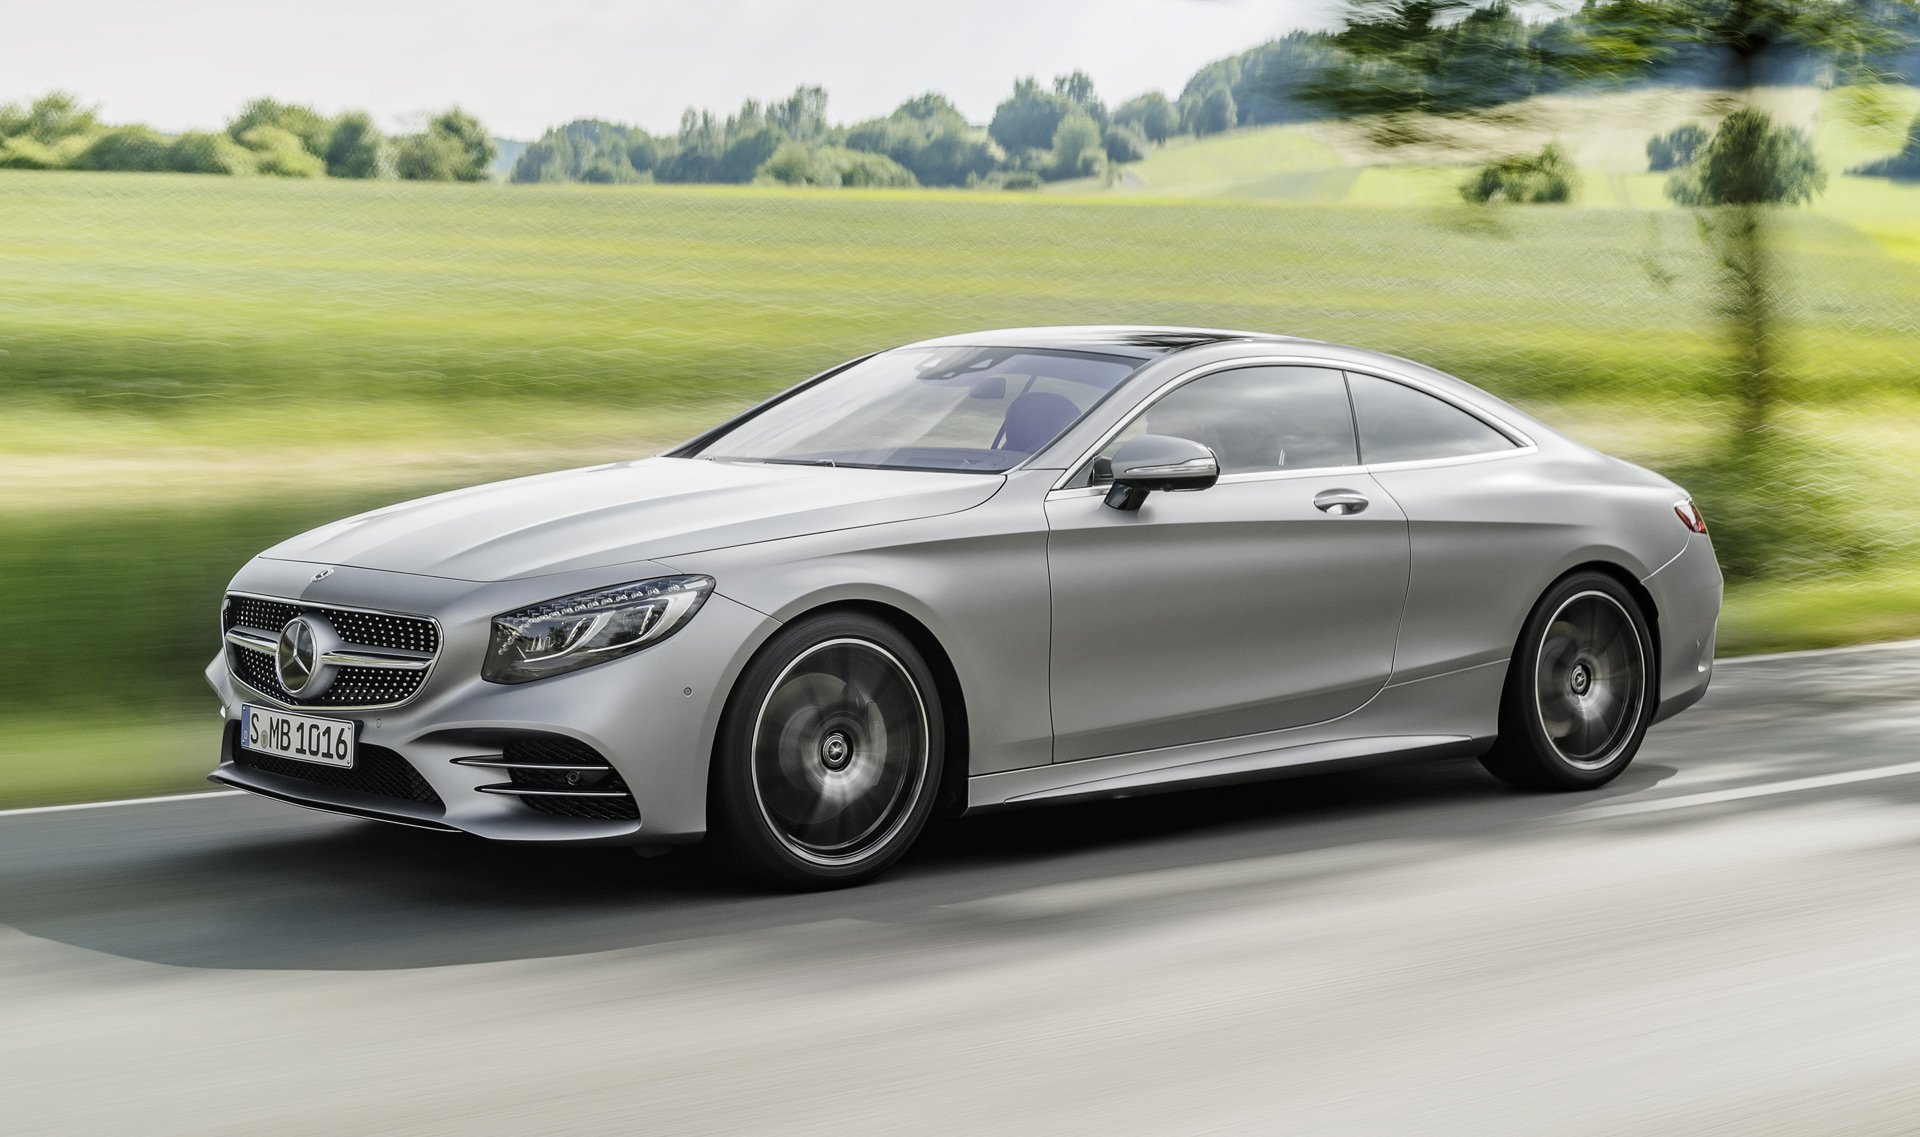 2018 Mercedes Benz S Class Coupe And Cabriolet Revealed